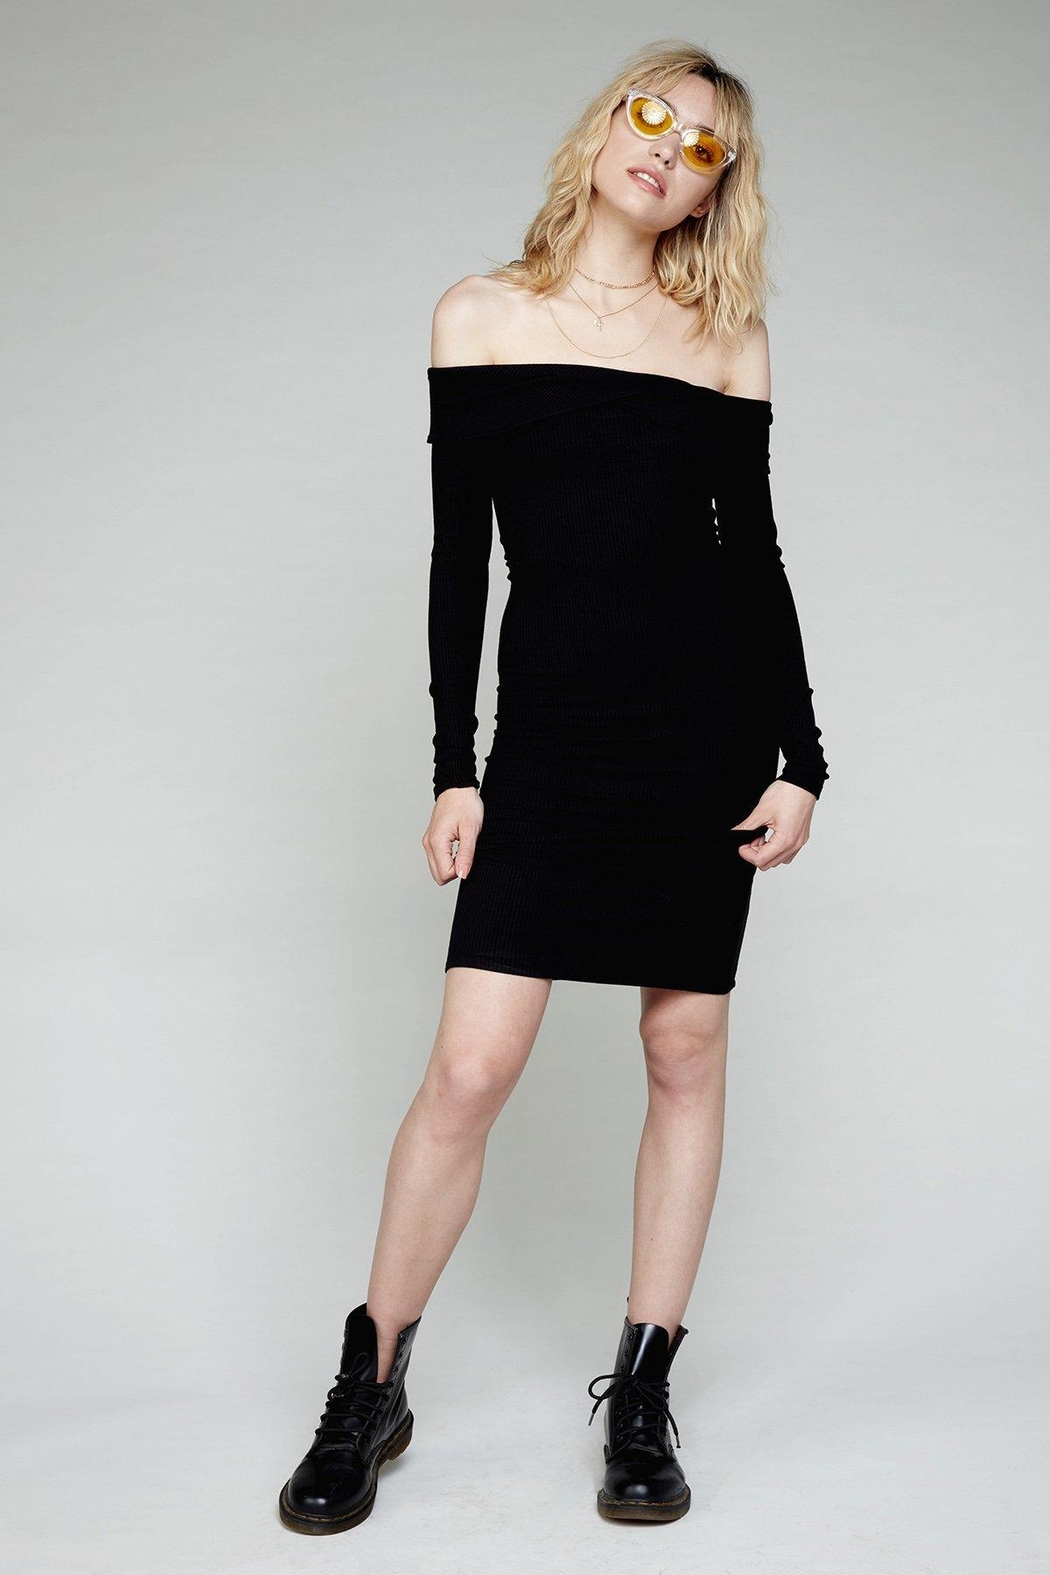 Flynn Skye Natasha Black Dress - Back Cropped Image